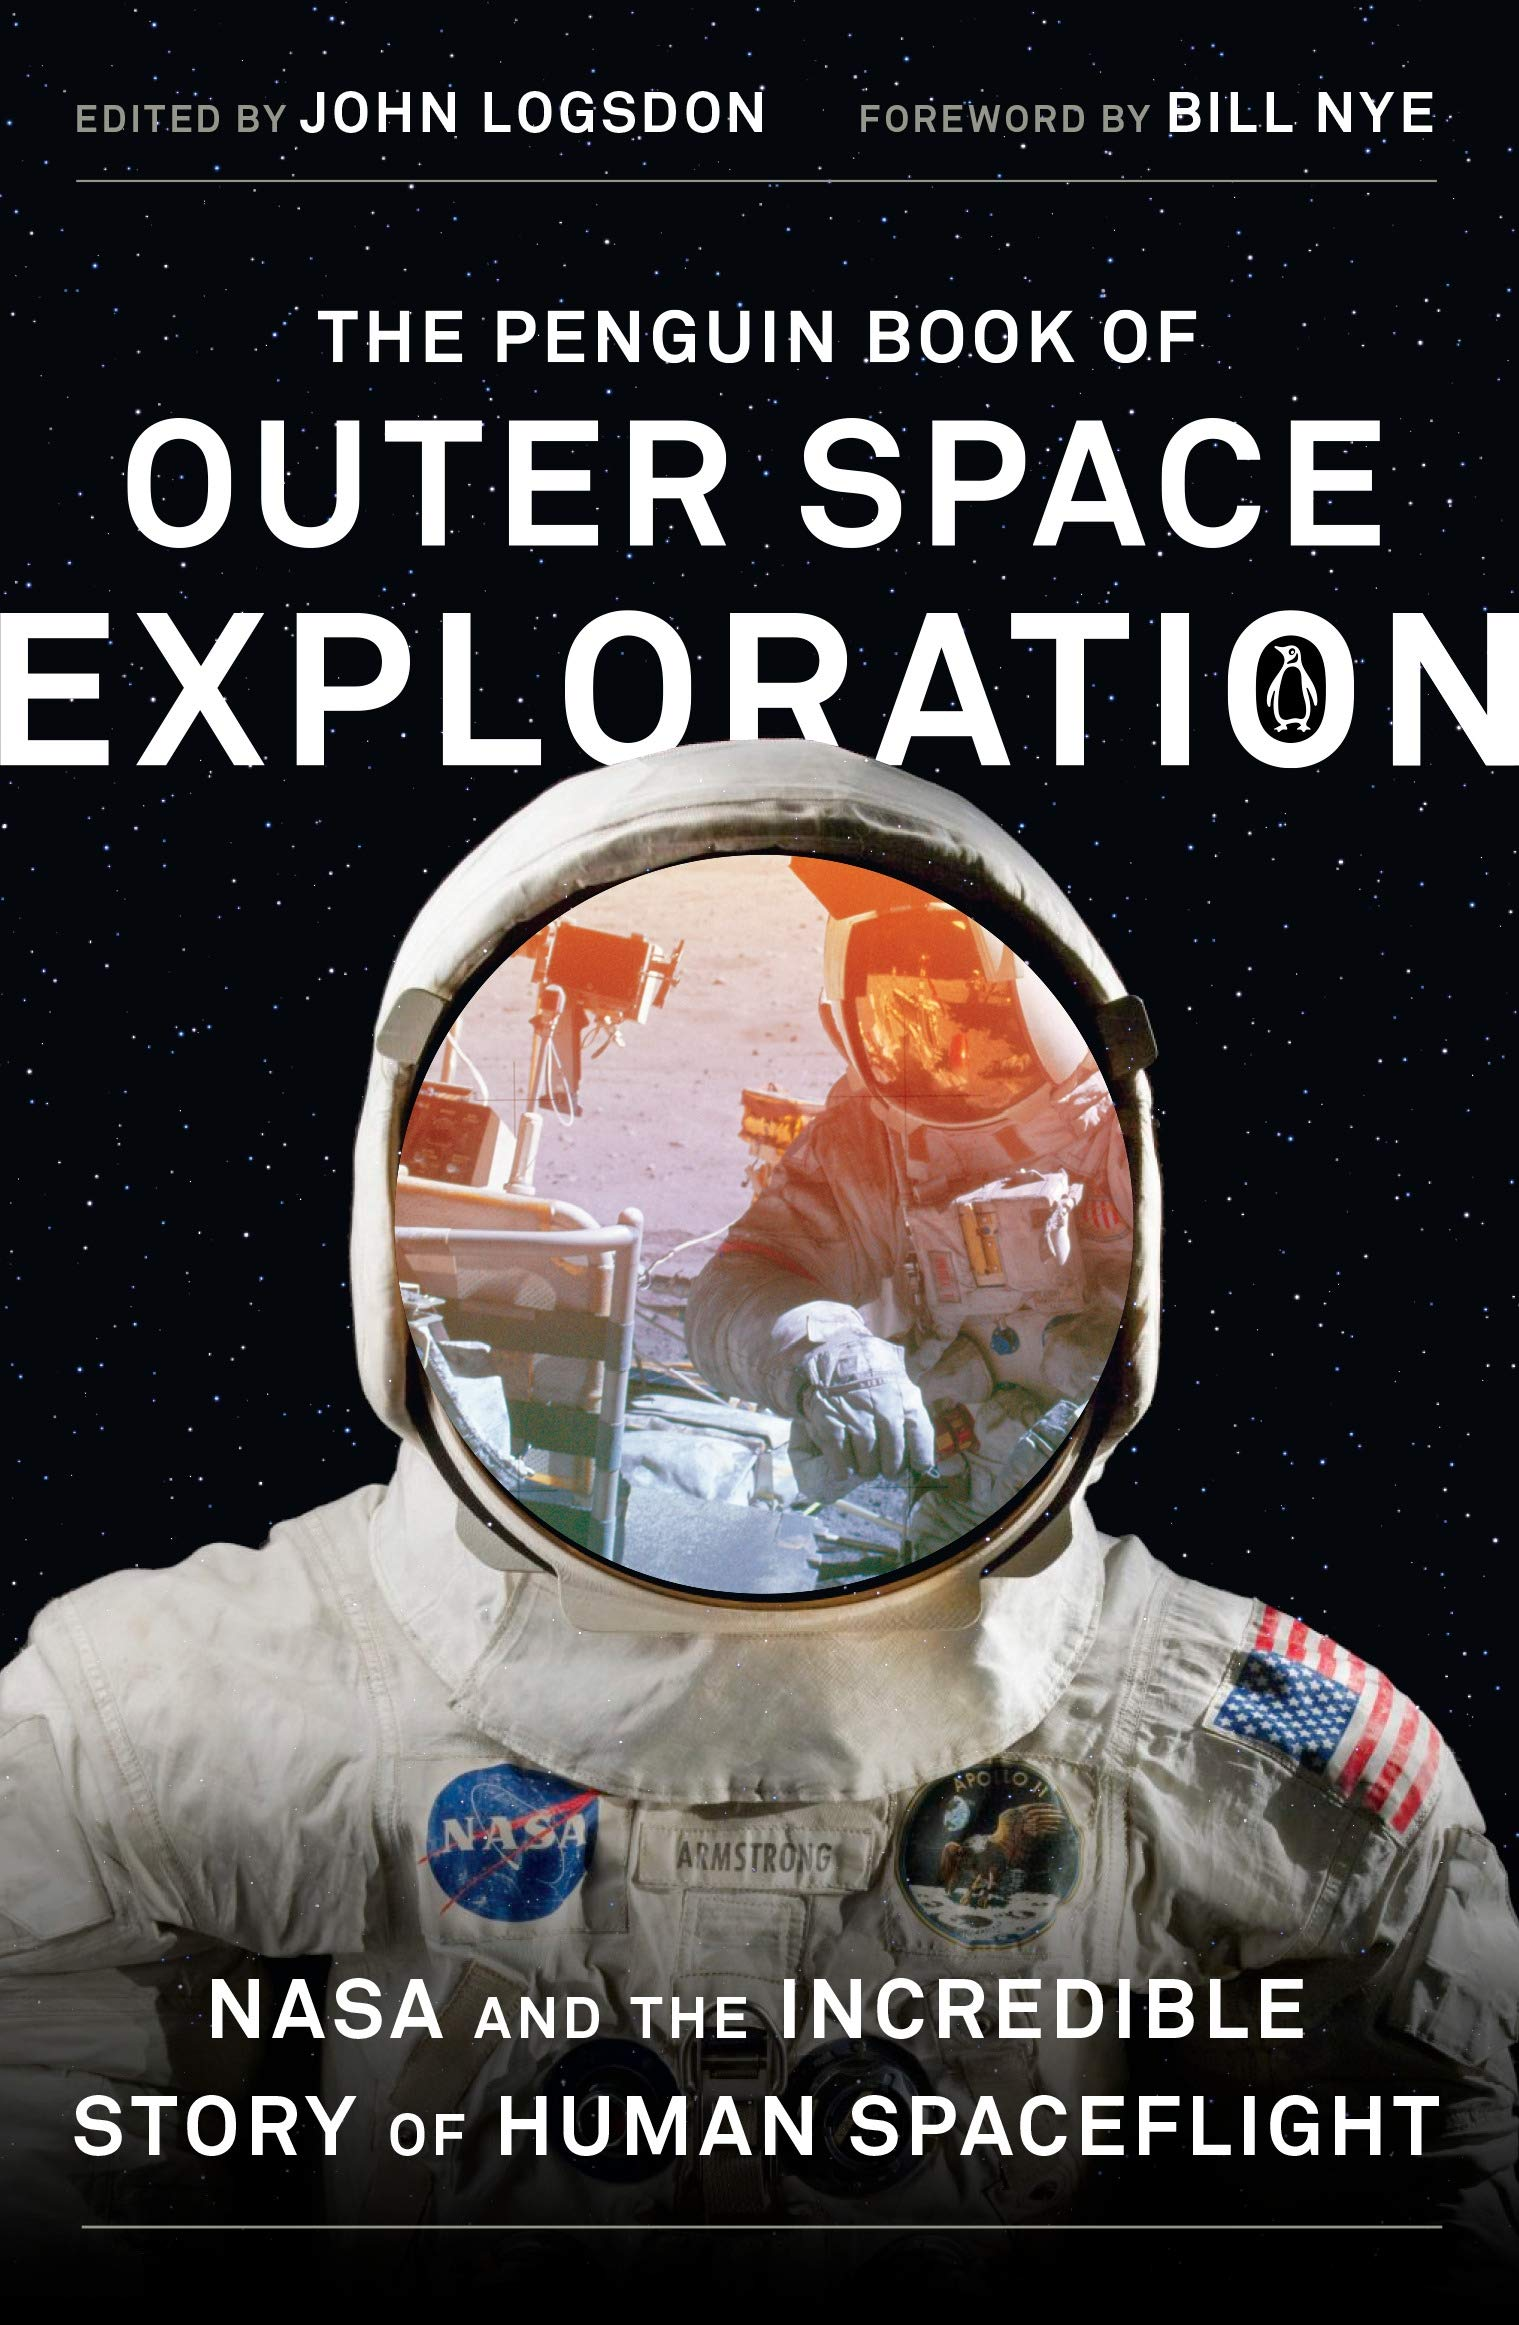 The Penguin Book of Outer Space Exploration: NASA and the Incredible Story  of Human Spaceflight: John Logsdon, Bill Nye: 9780143129950: Amazon.com:  Books